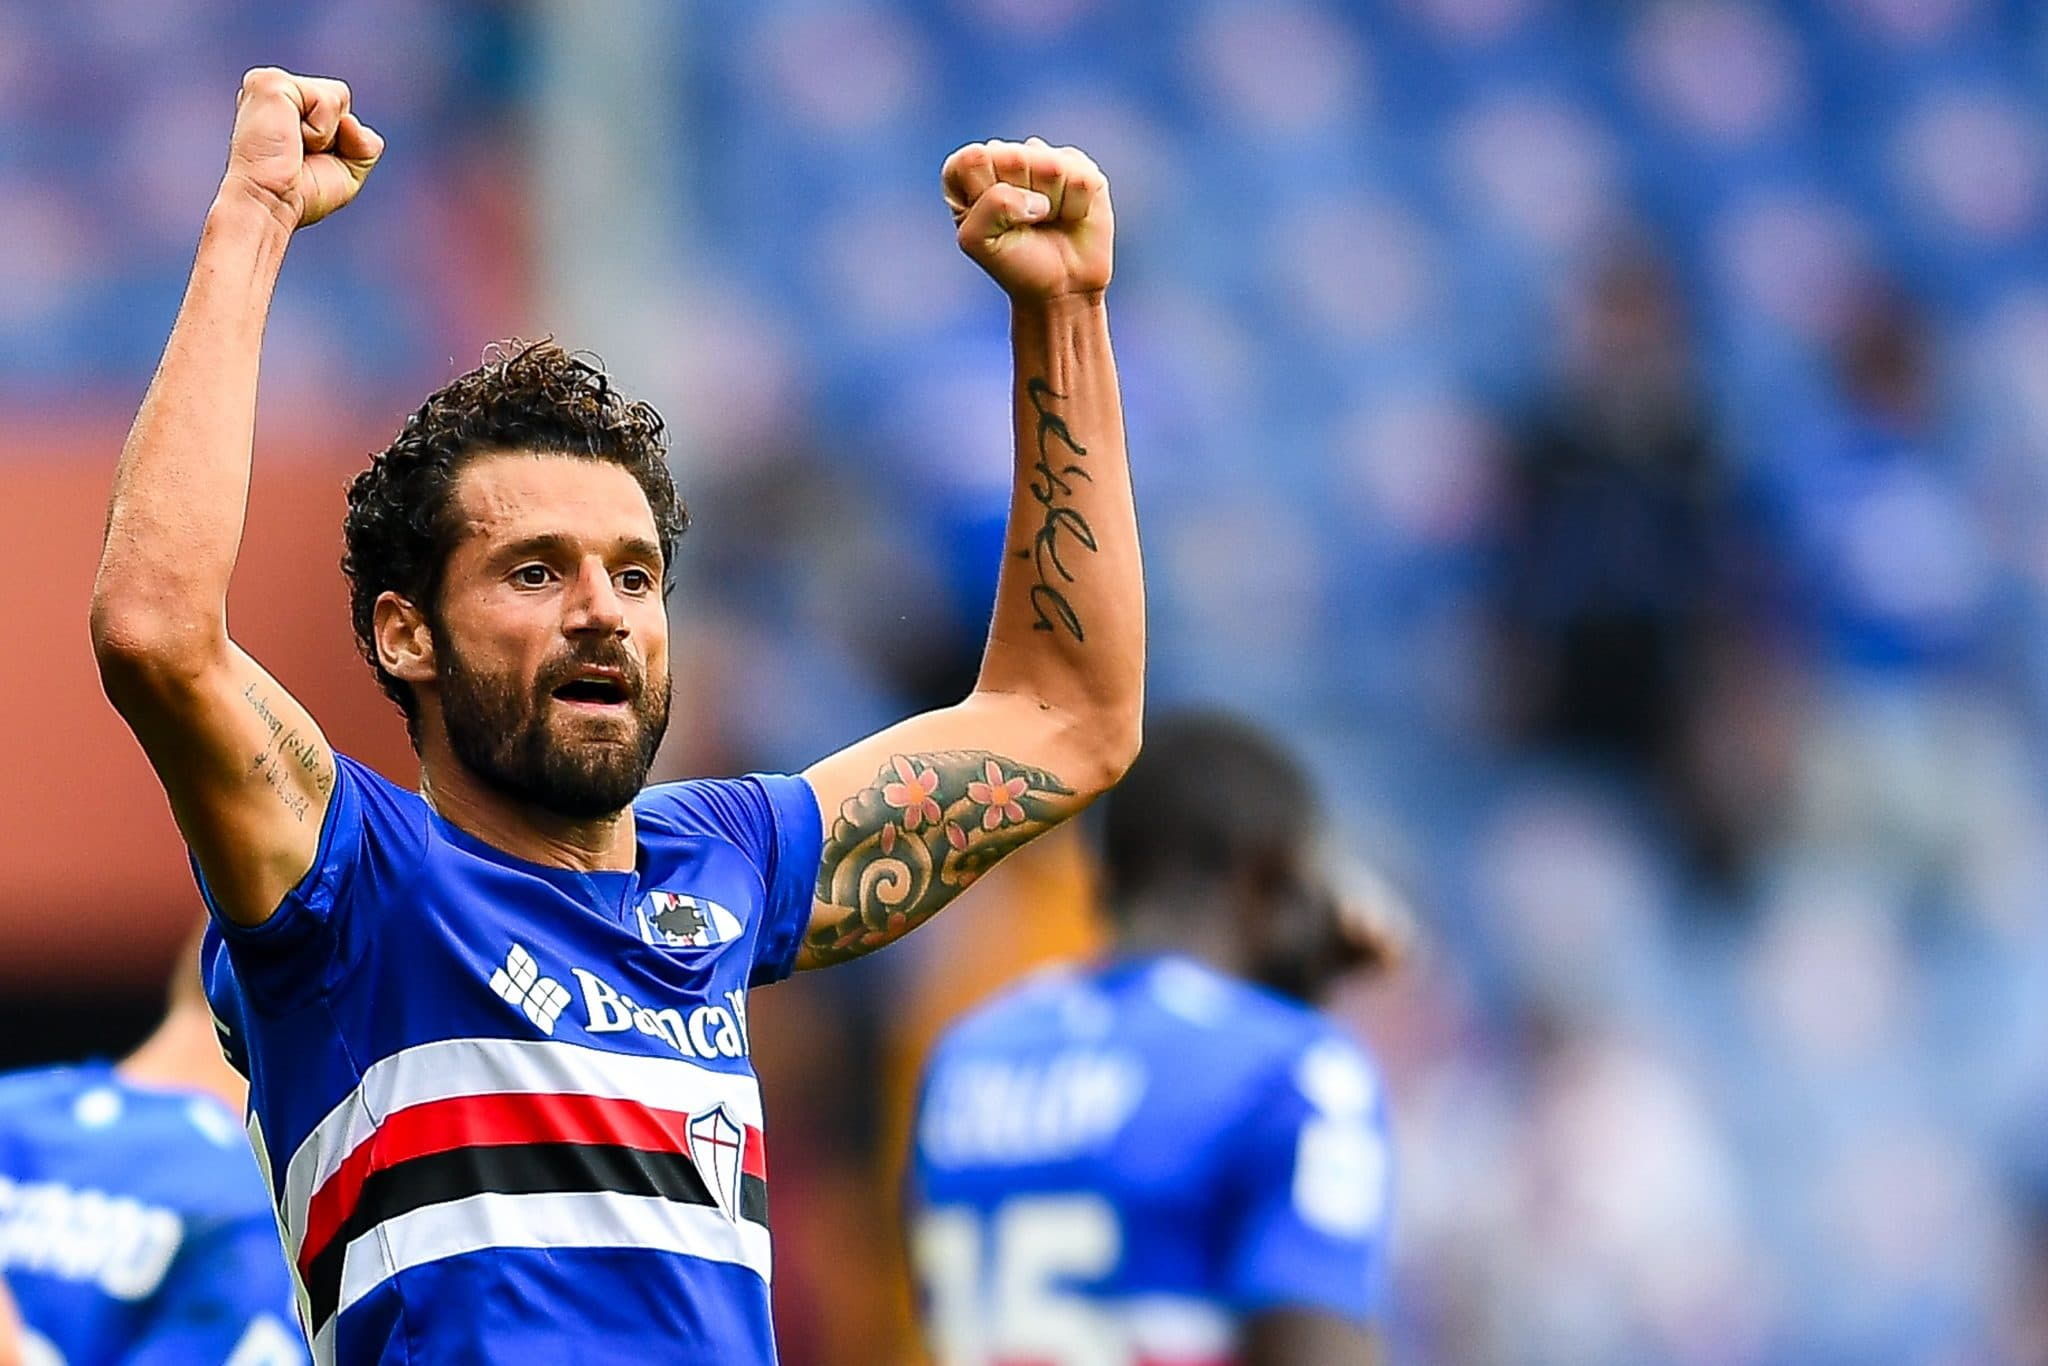 GENOA, ITALY - OCTOBER 3: Antonio Candreva of Sampdoria celebrates after scoring a goal during the Serie A match between UC Sampdoria and Udinese Calcio at Stadio Luigi Ferraris on Ctober 3, 2021 in Genoa, Italy. (Photo by Getty Images)